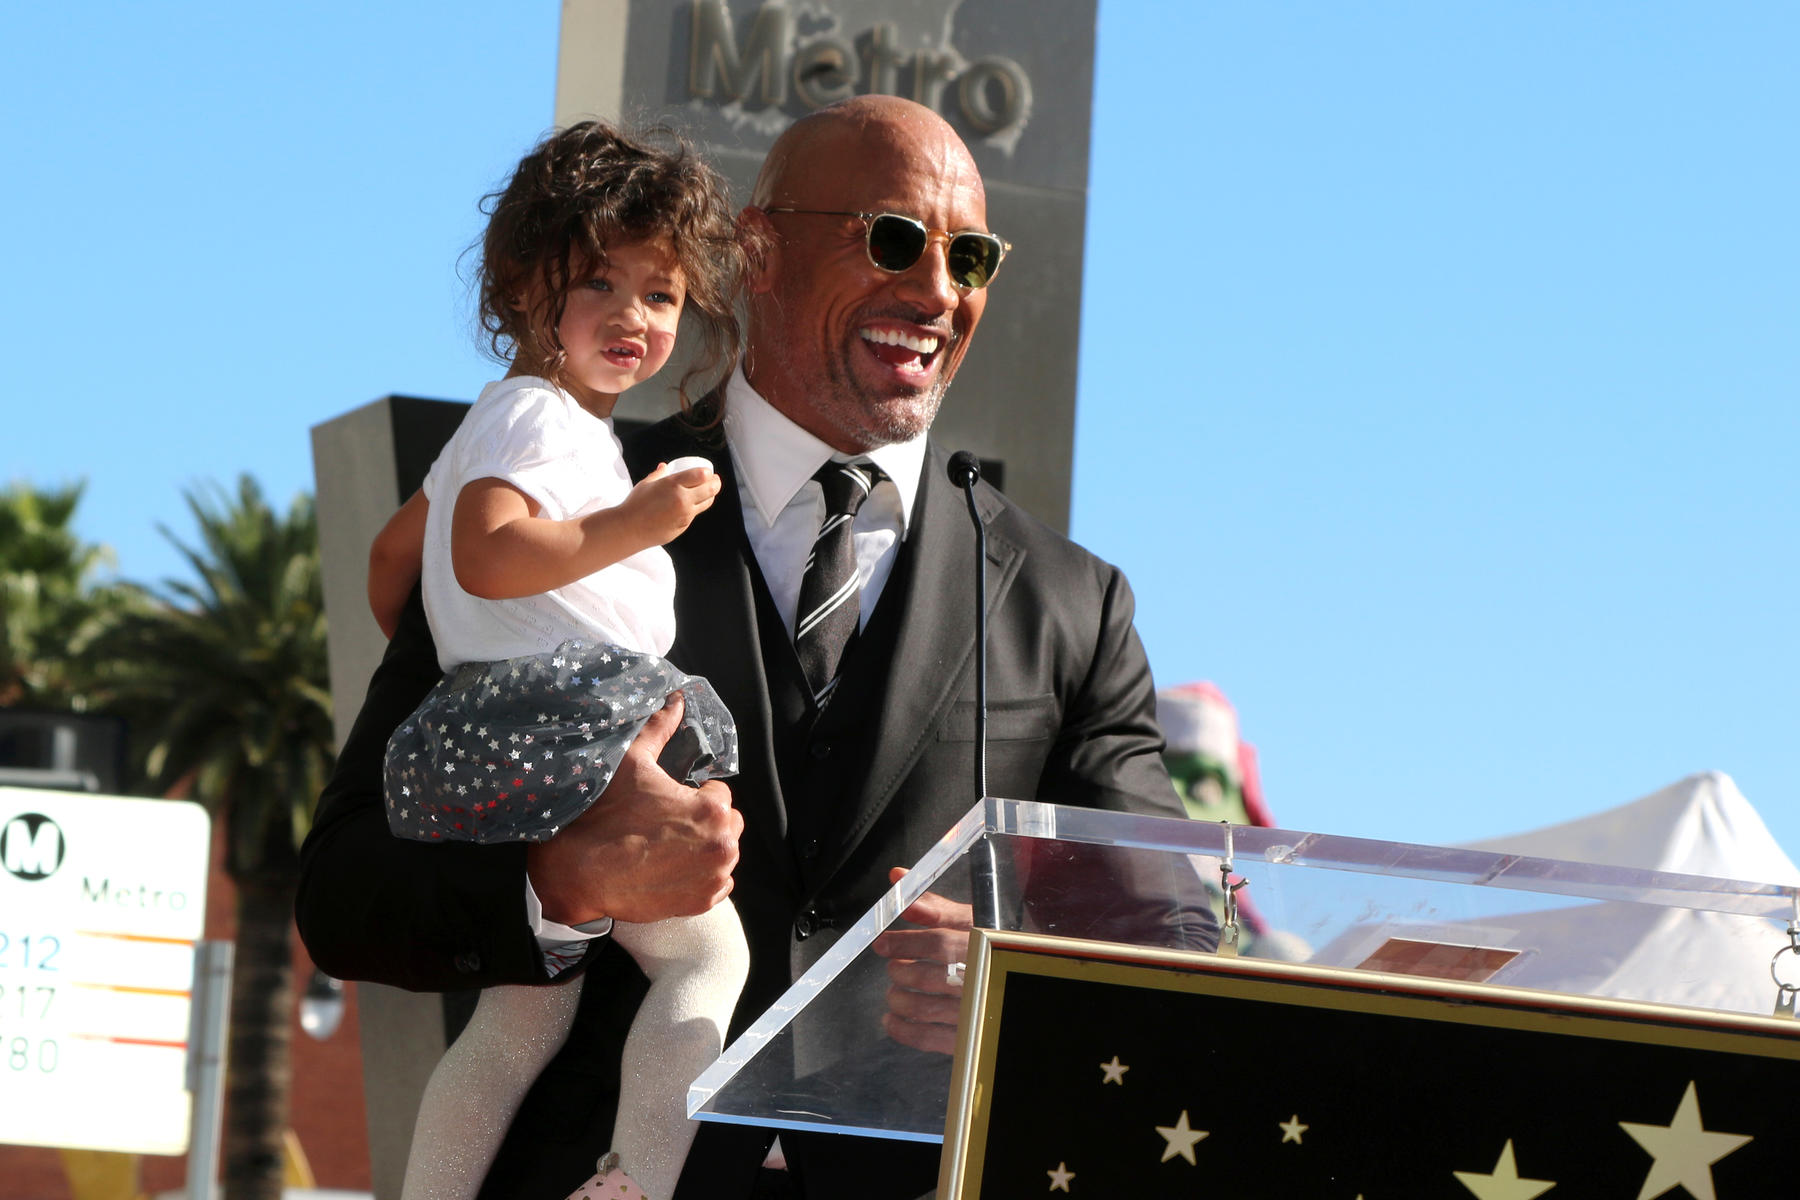 The Rock and his daughter Jasmine